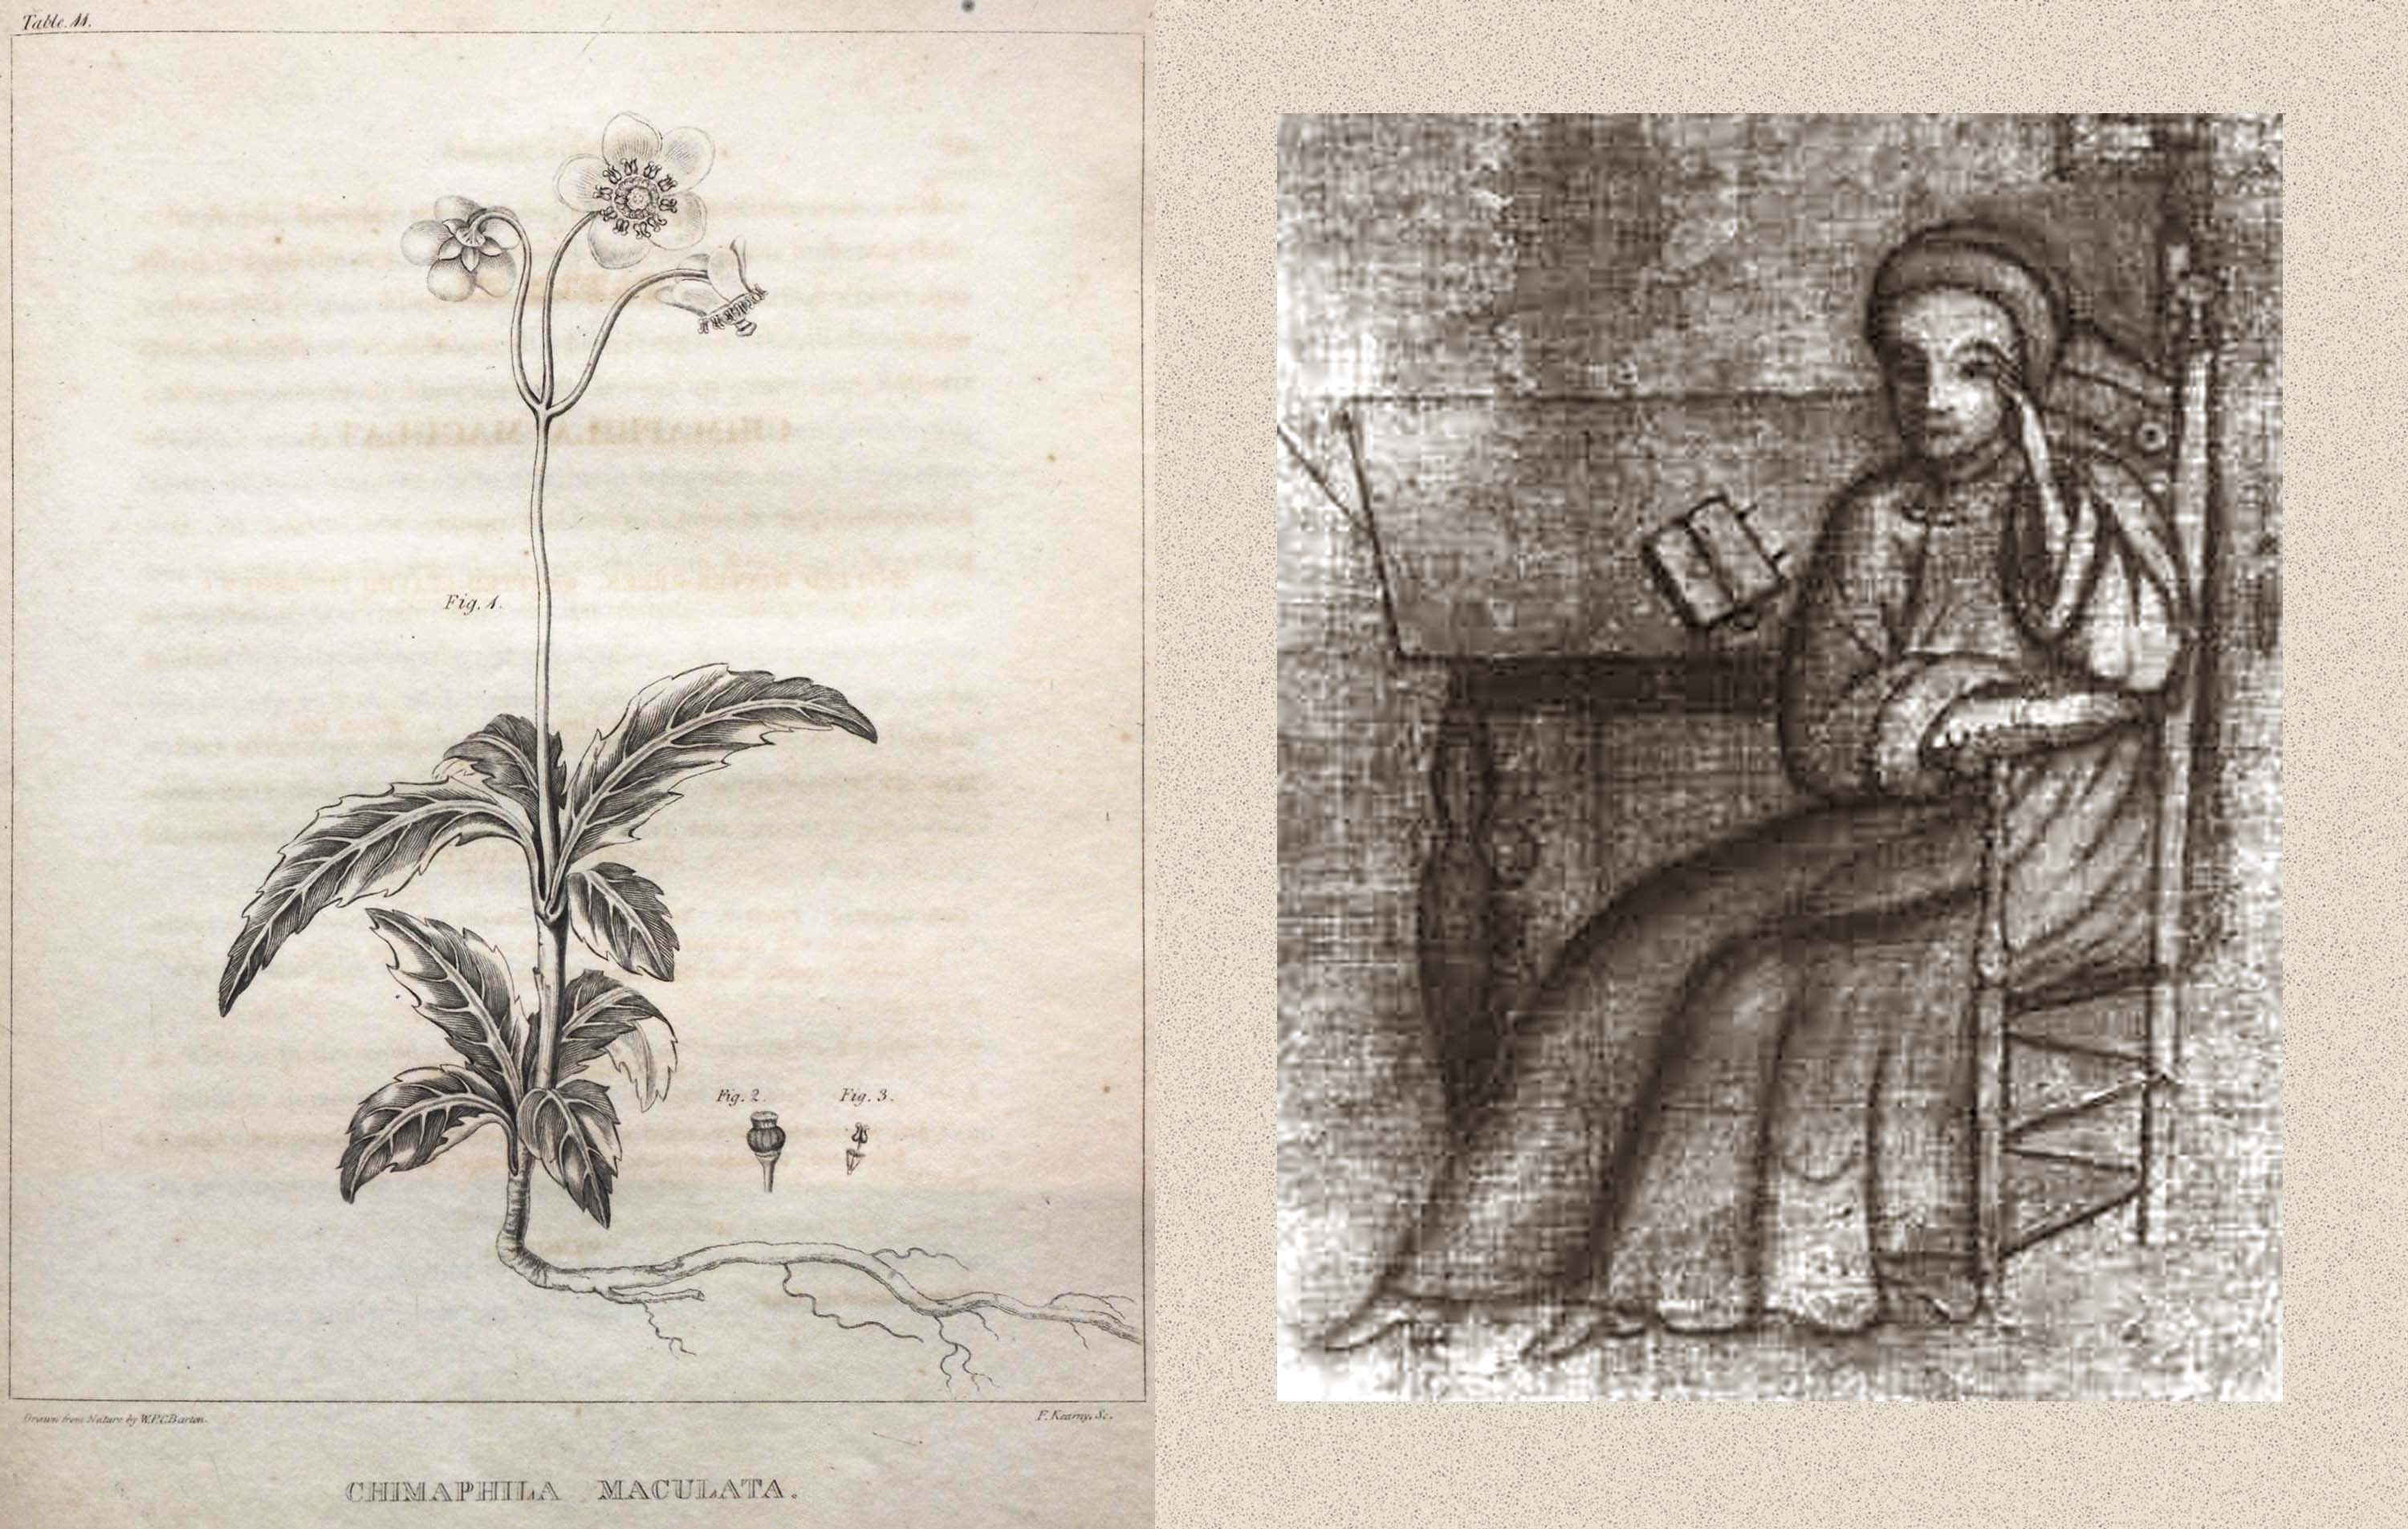 Left: Chimaphila maculata, Right: Painting of Johannes Kelpius